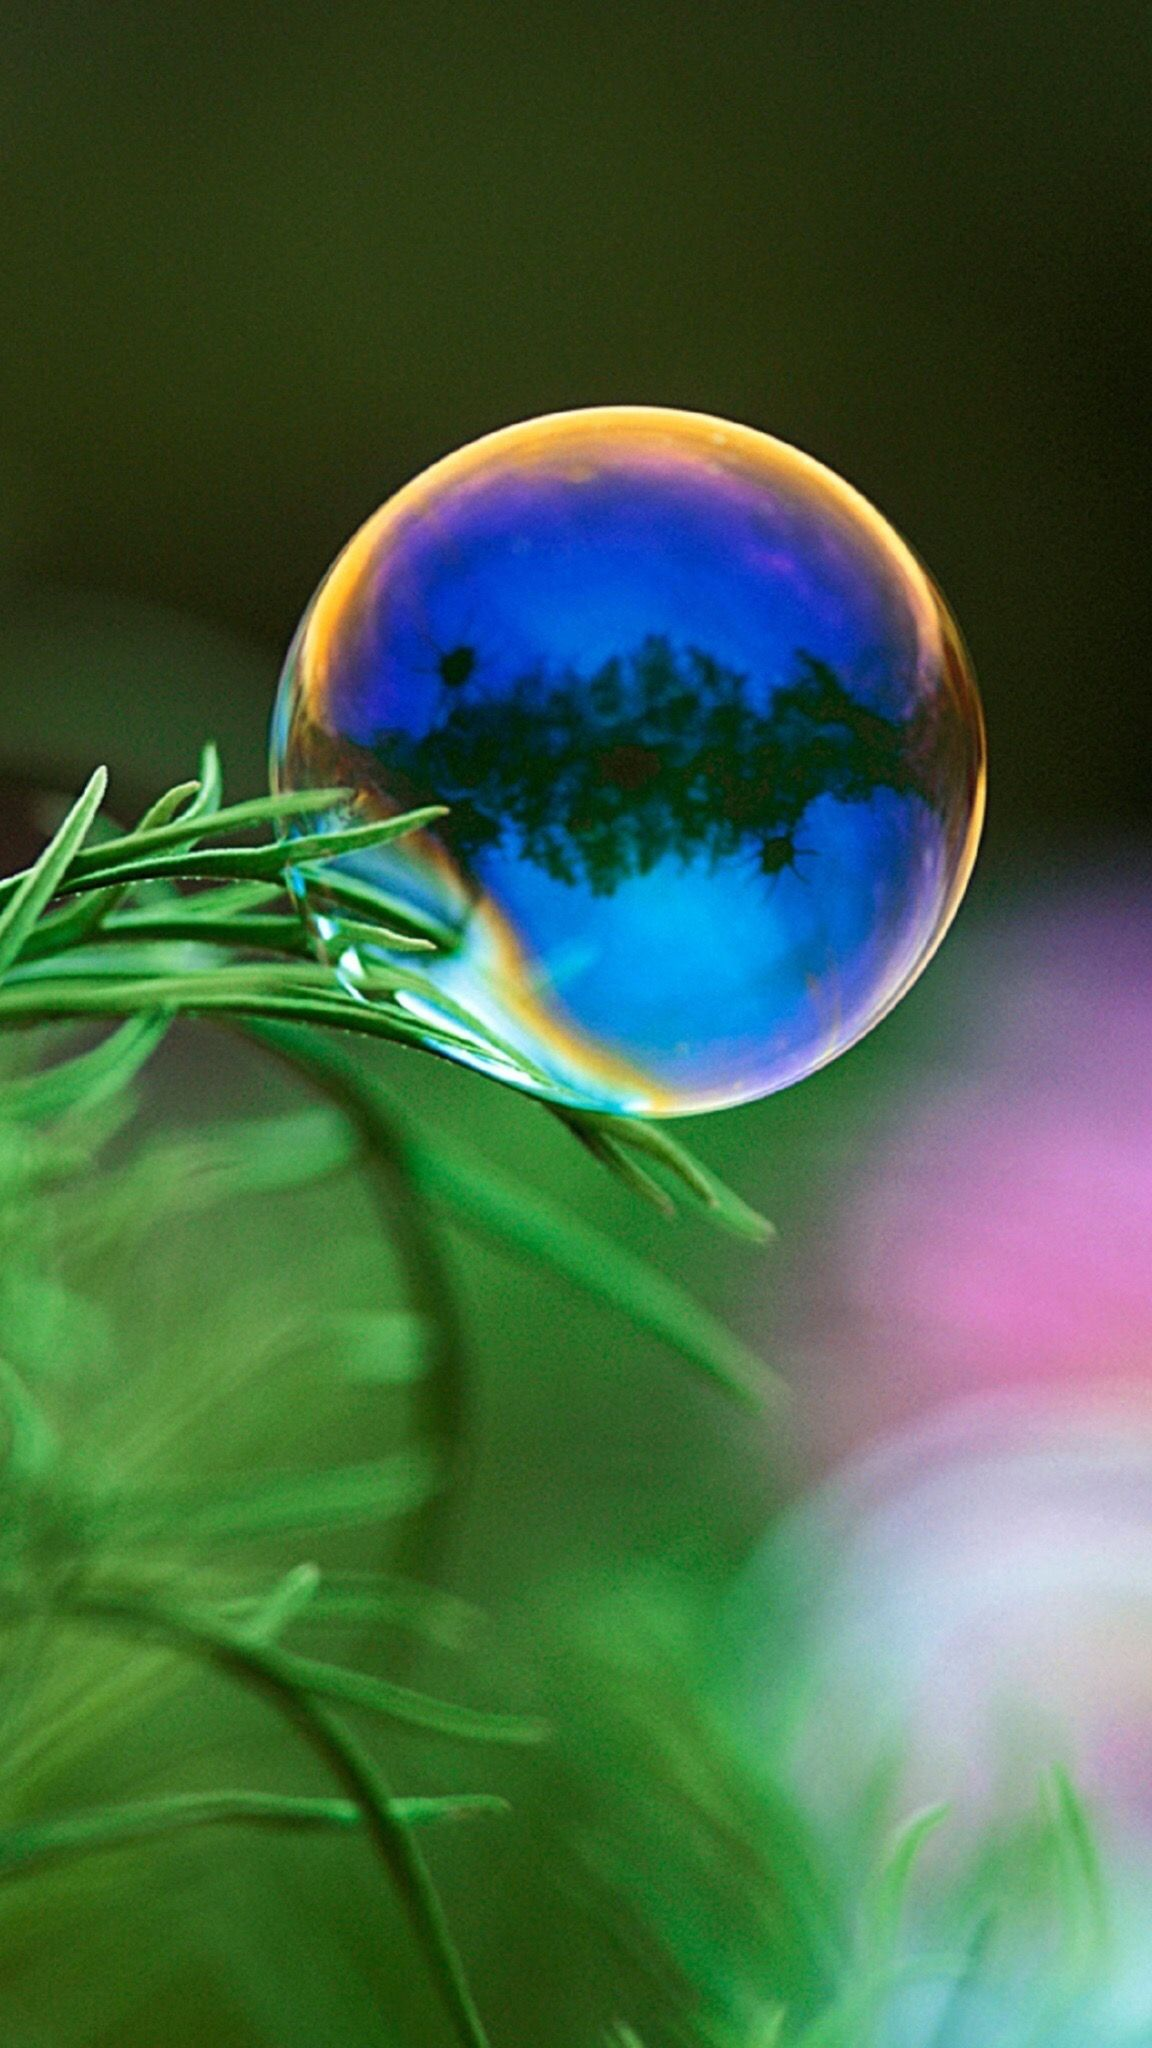 Soap Bubble And Green Leaf Wallpaper